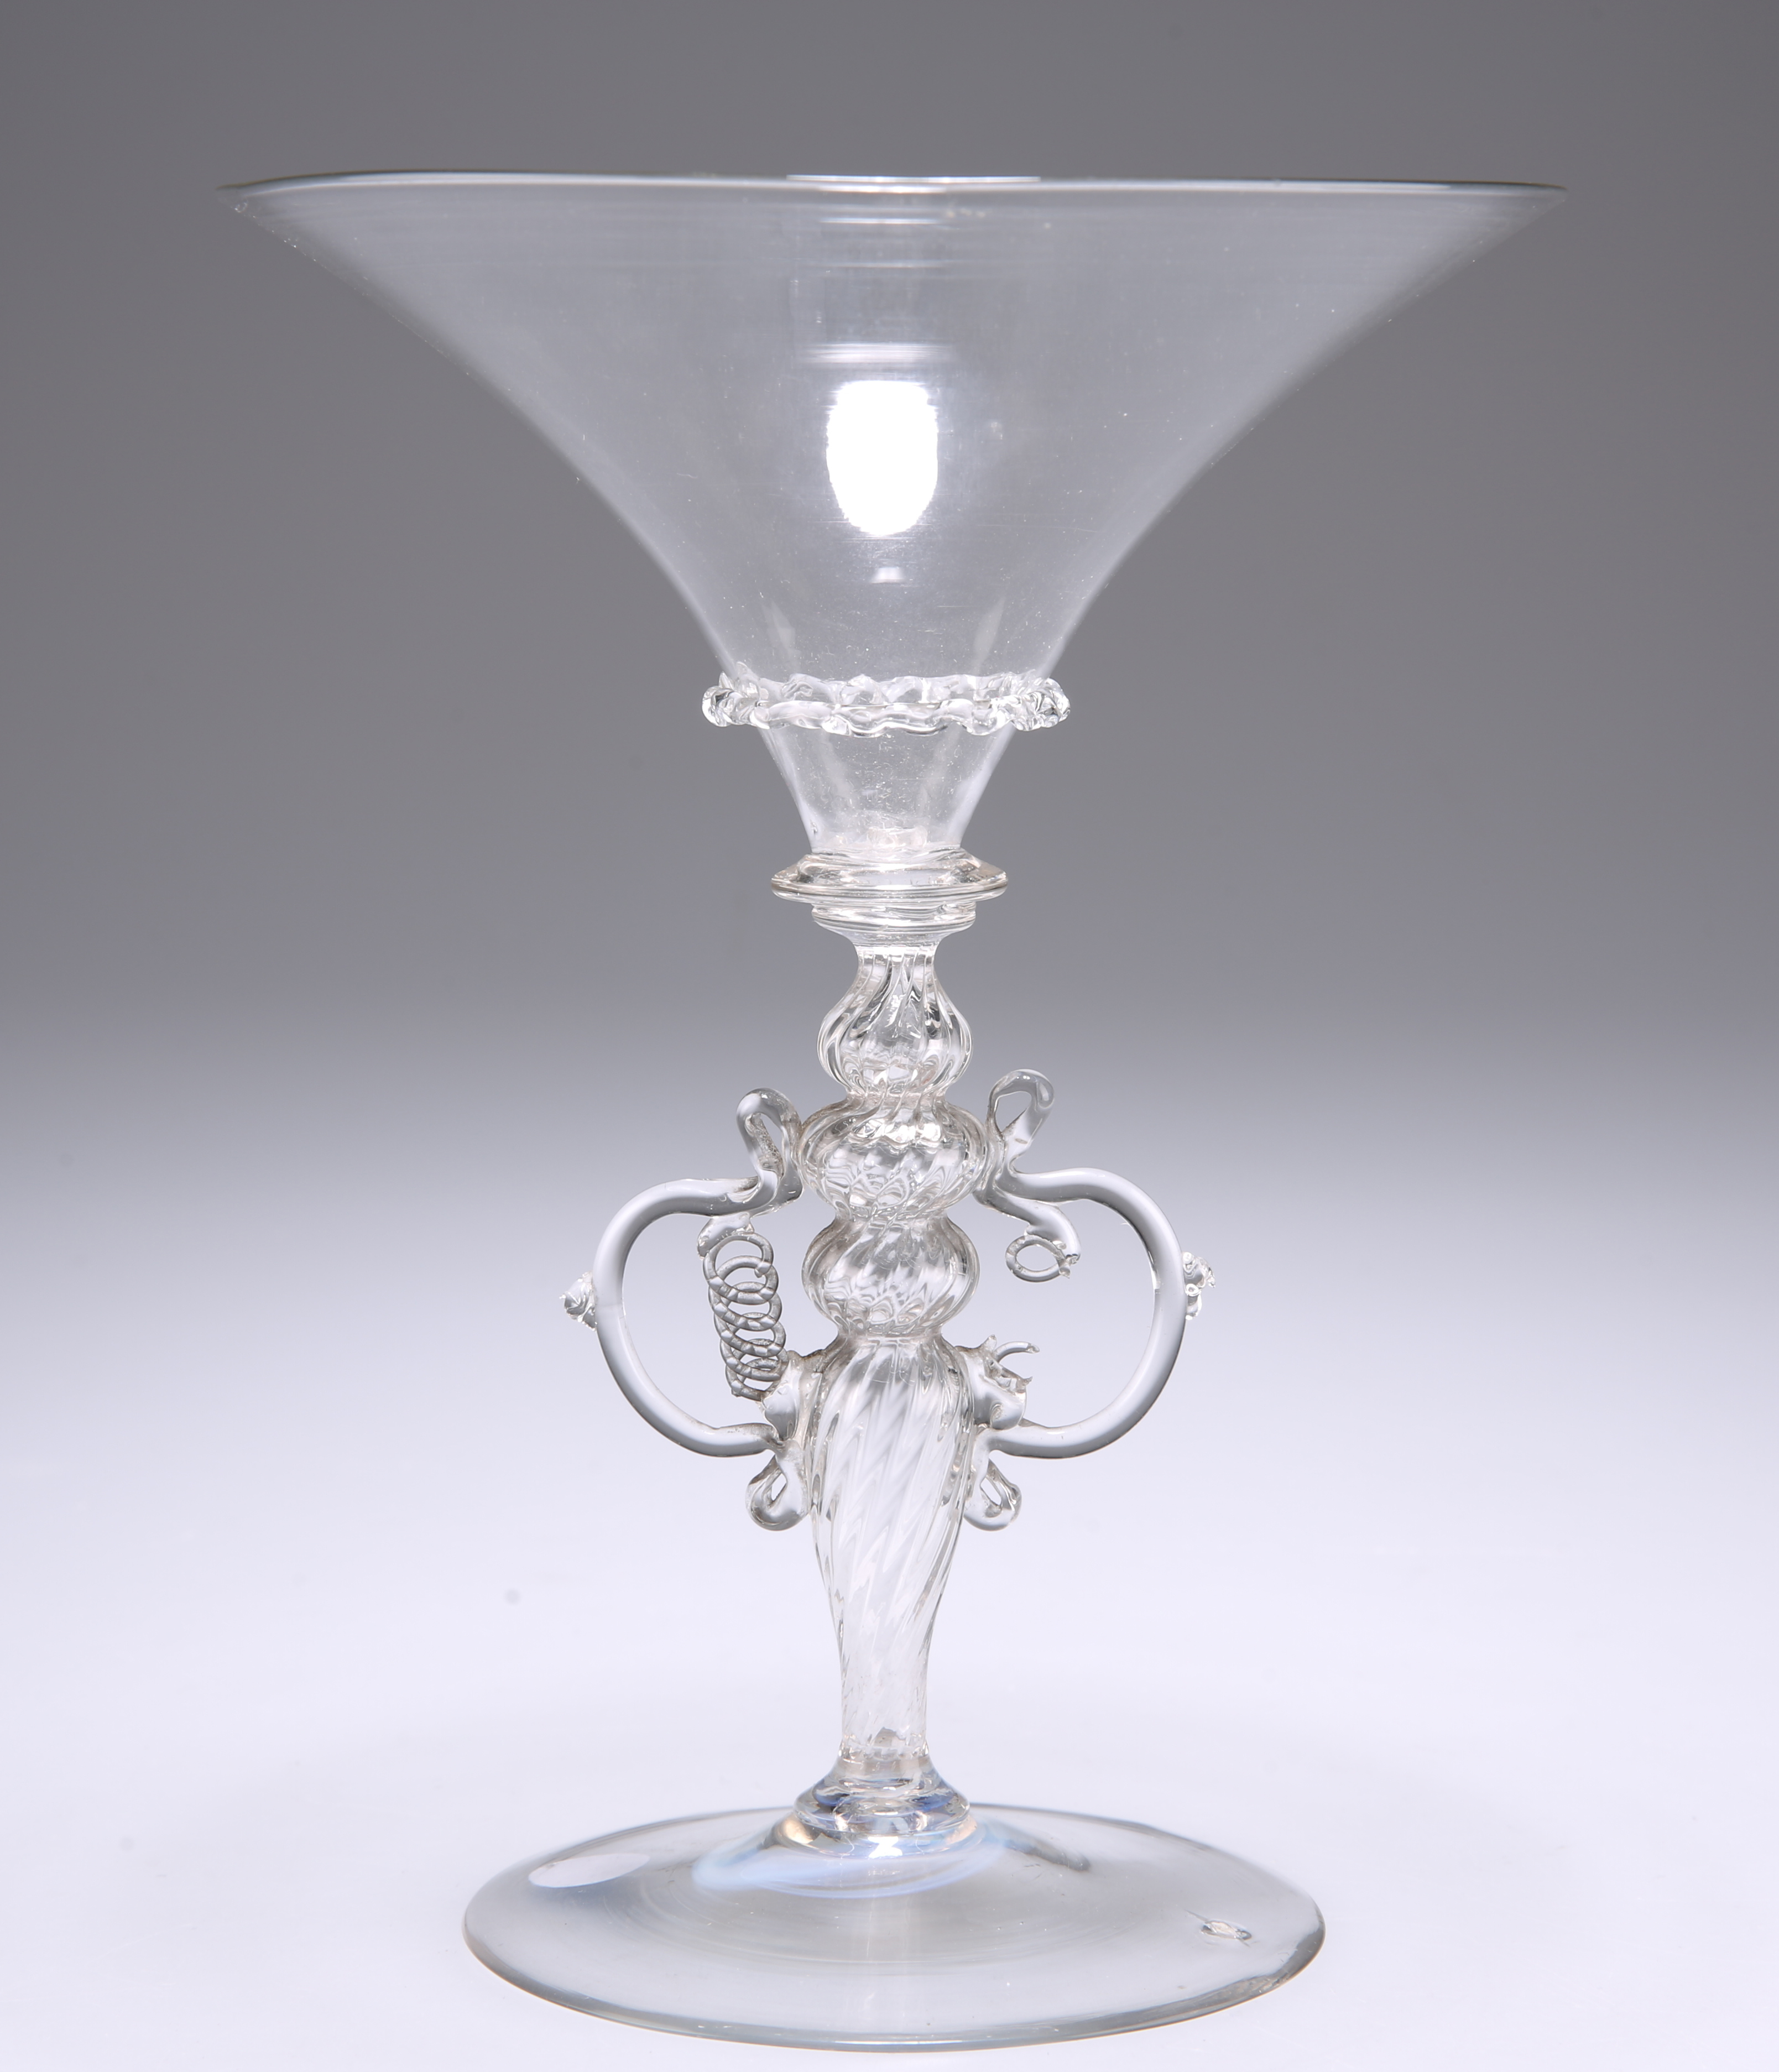 A VENETIAN WINGED WINE GLASS - Image 2 of 2